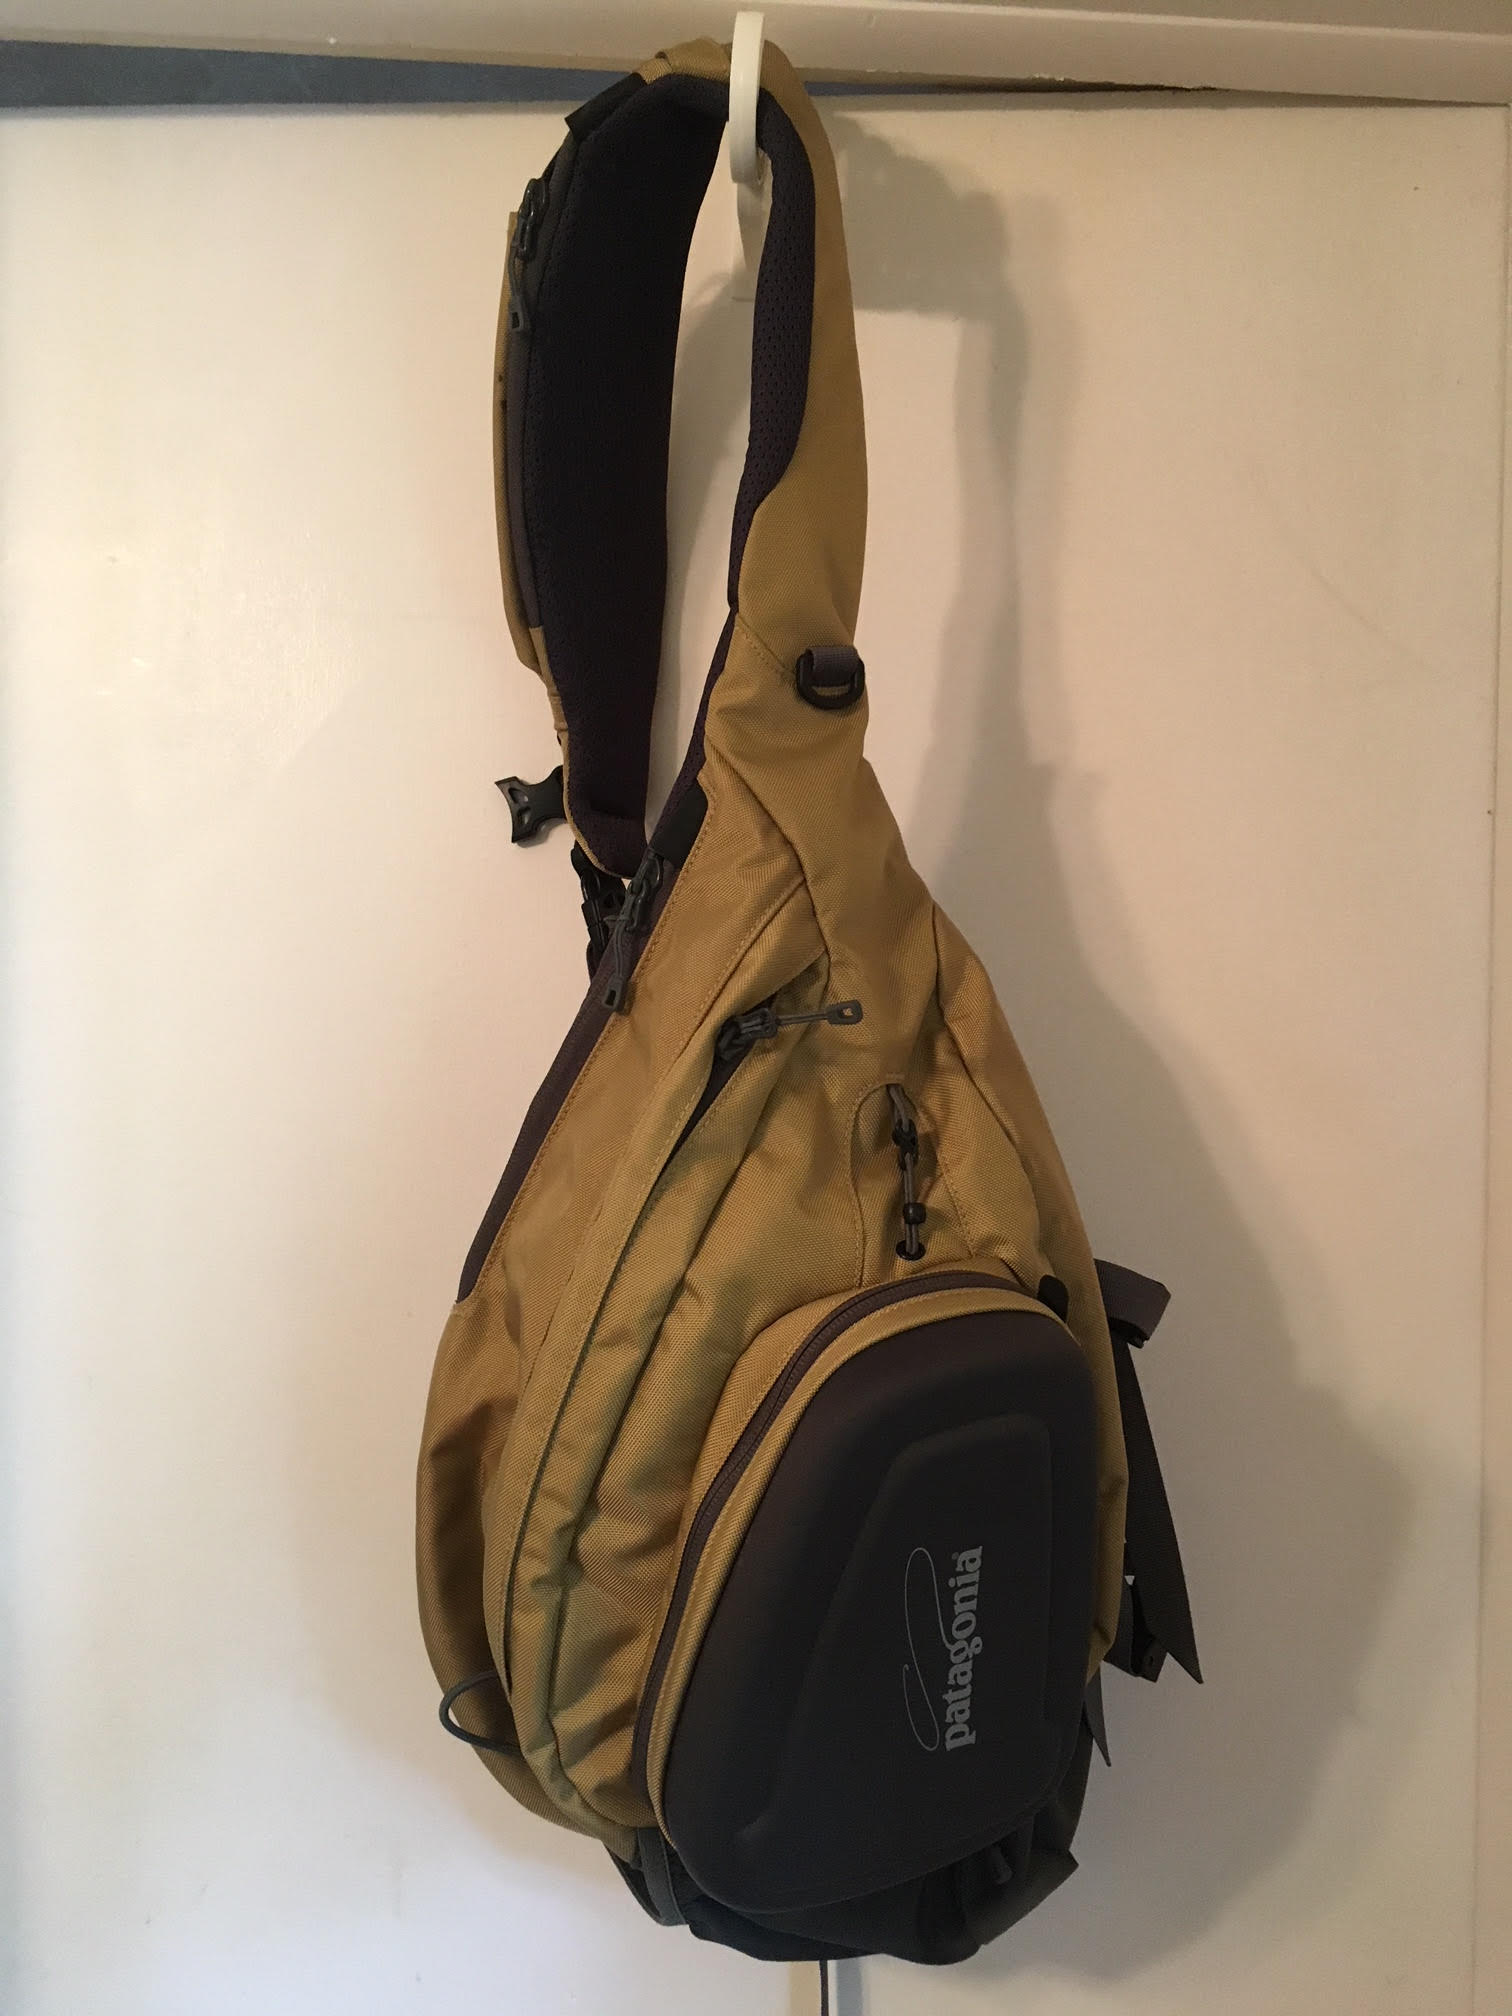 Click image for larger version  Name:SLING PACK1.jpg Views:11 Size:194.0 KB ID:347558